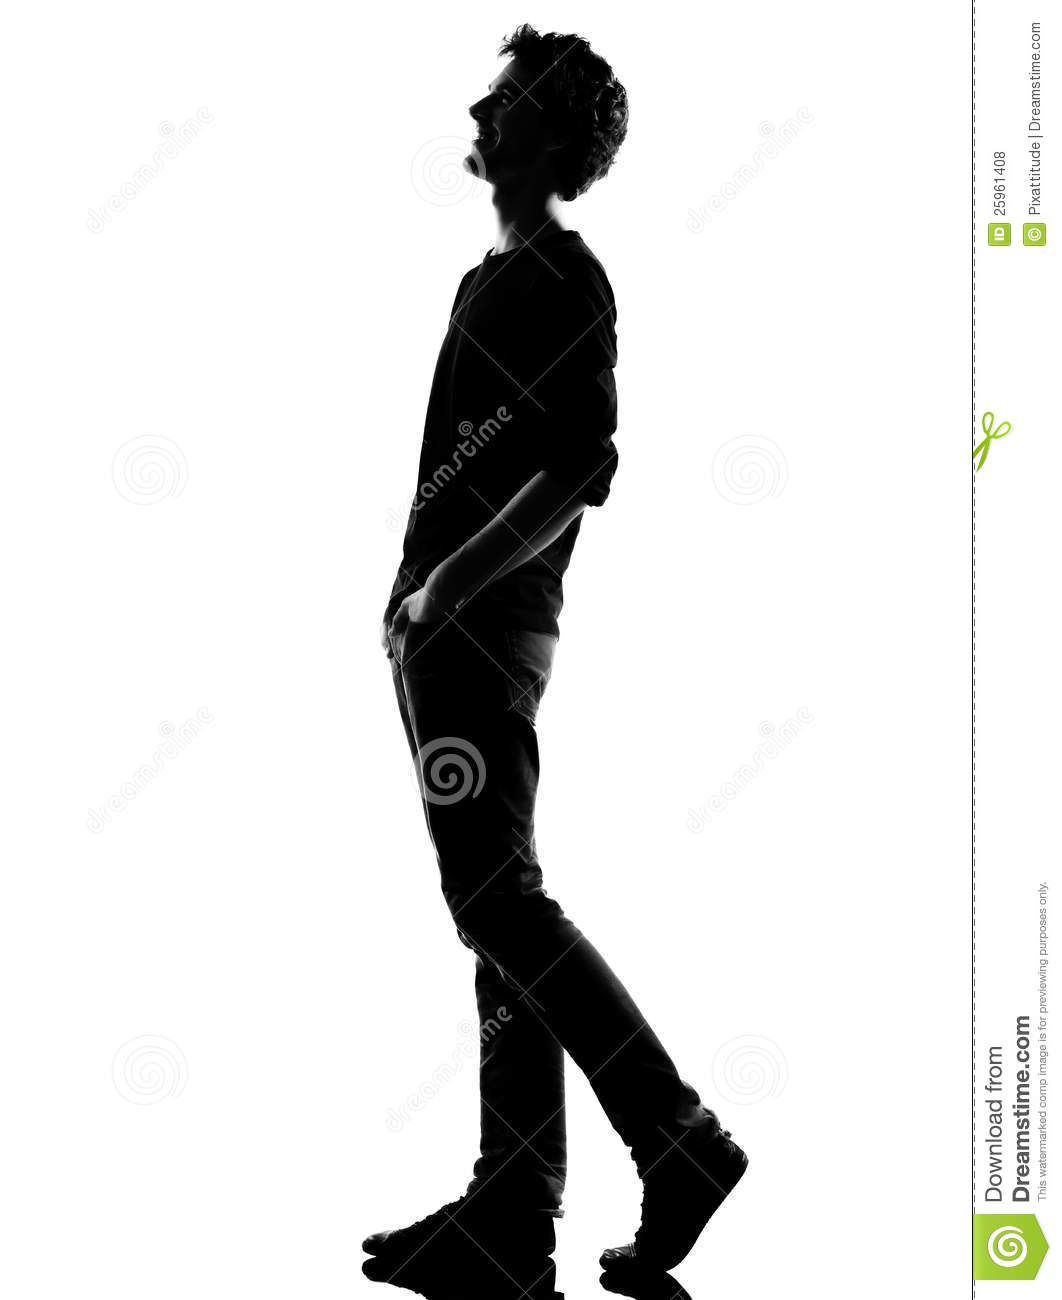 young-man-silhouette-walking-happy-laugh